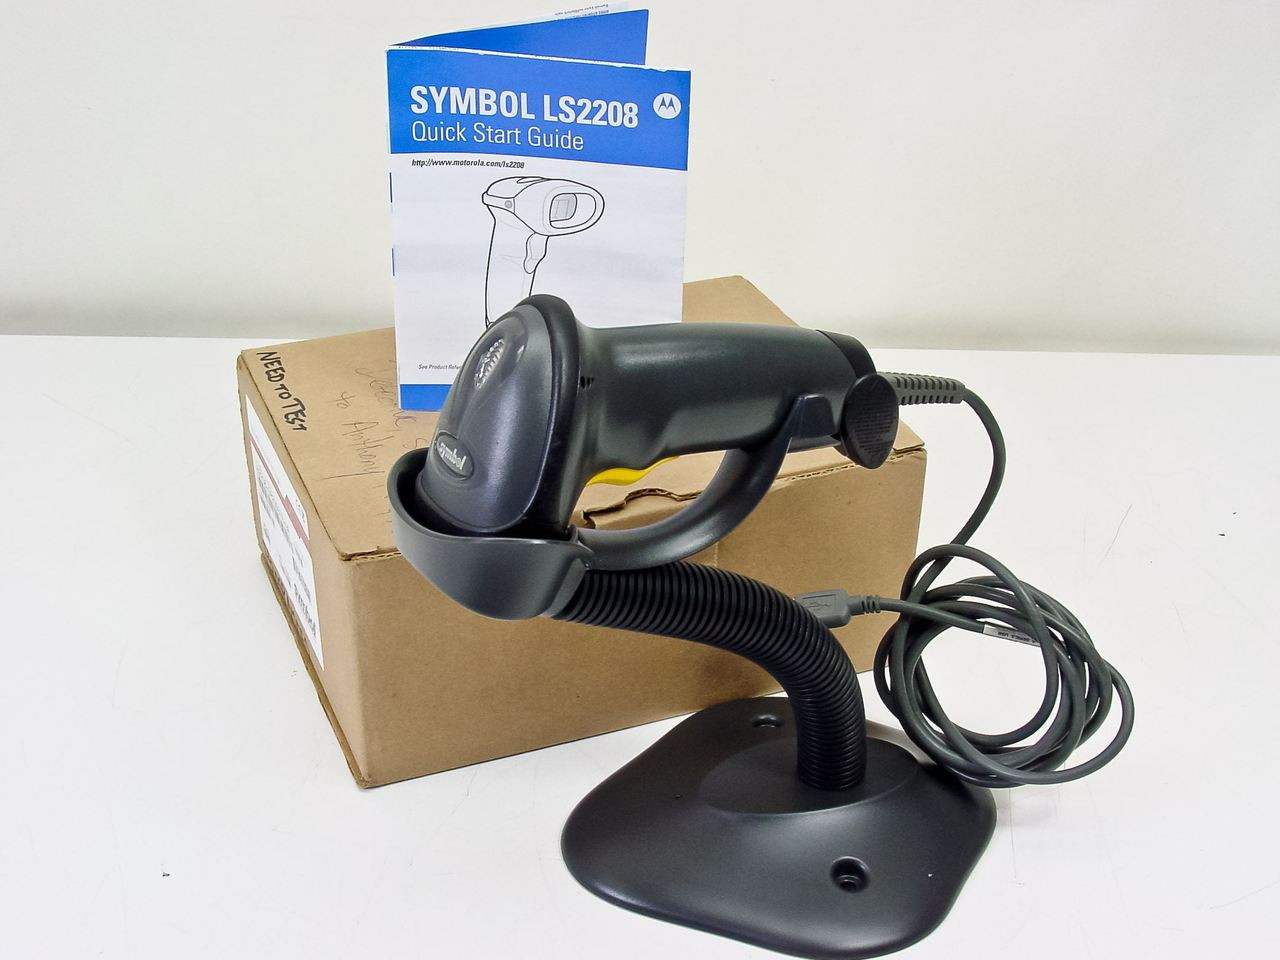 Symbol technologies ls2208 sr20007 barcode scanner with usb cable symbol technologies ls2208 sr20007 barcode scanner with usb cable stand biocorpaavc Gallery